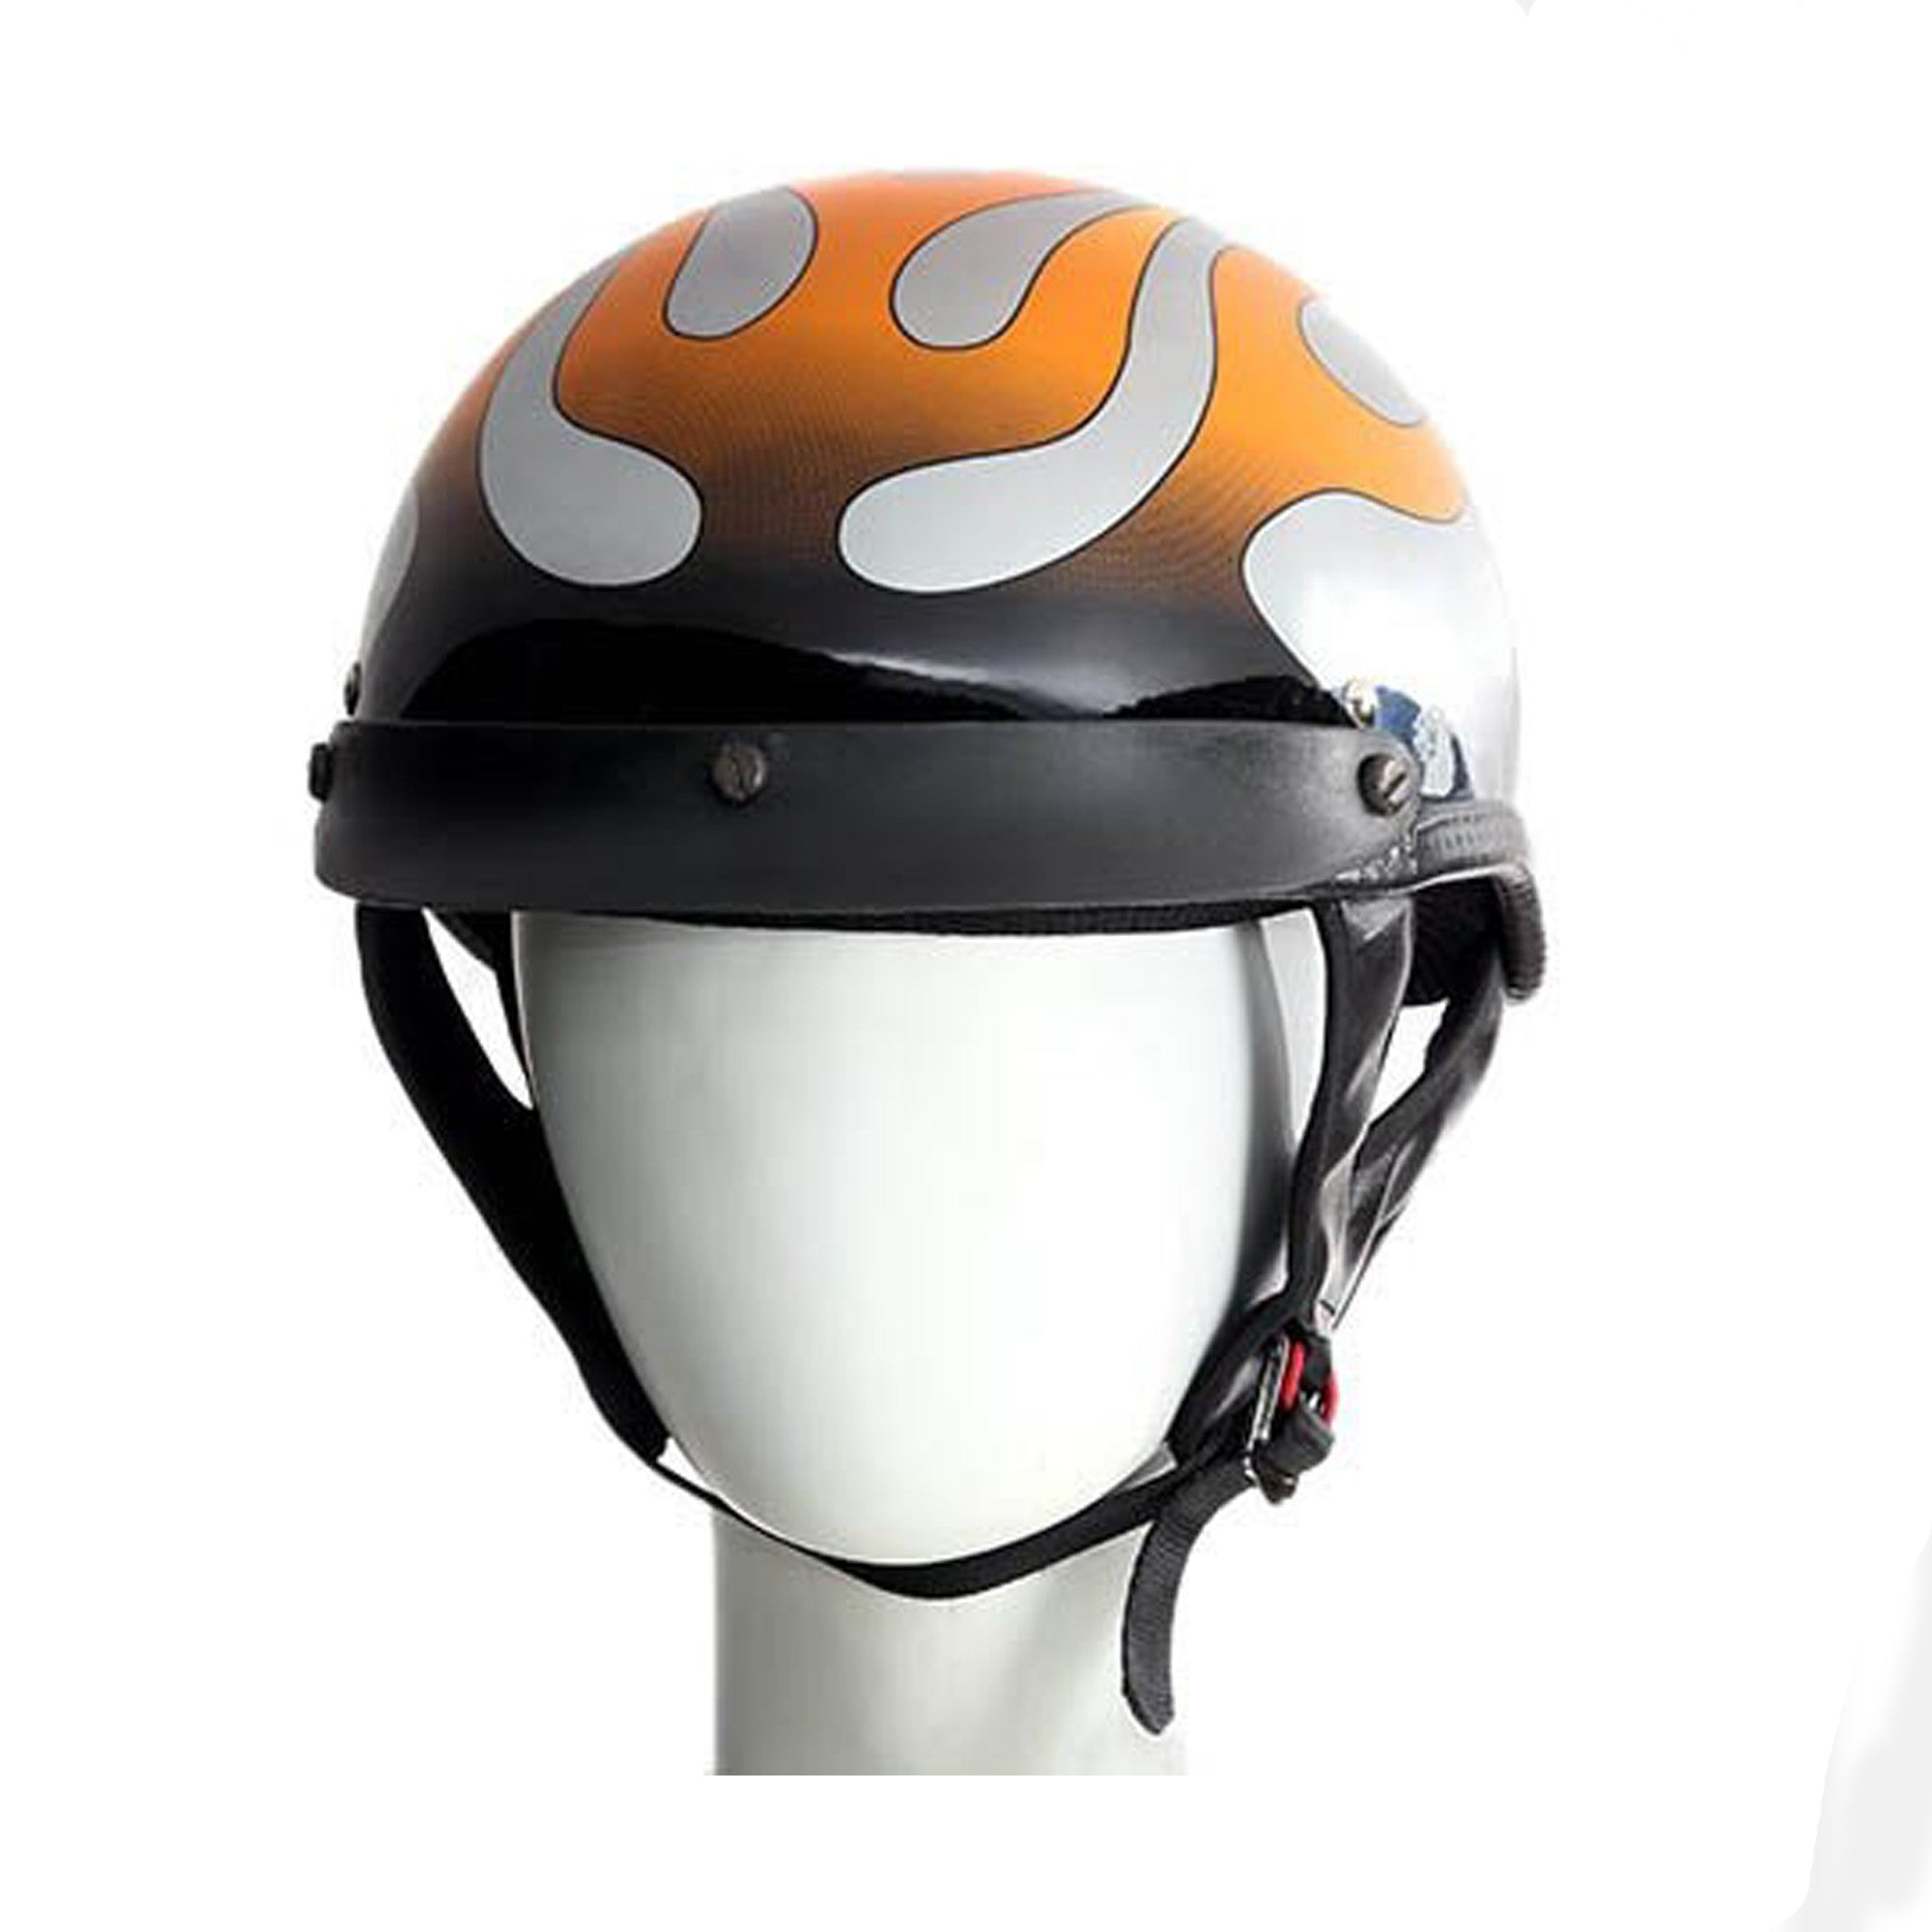 RIDING 200 CHROME FLAME GRAPHIC DOT APPROVED HELMET